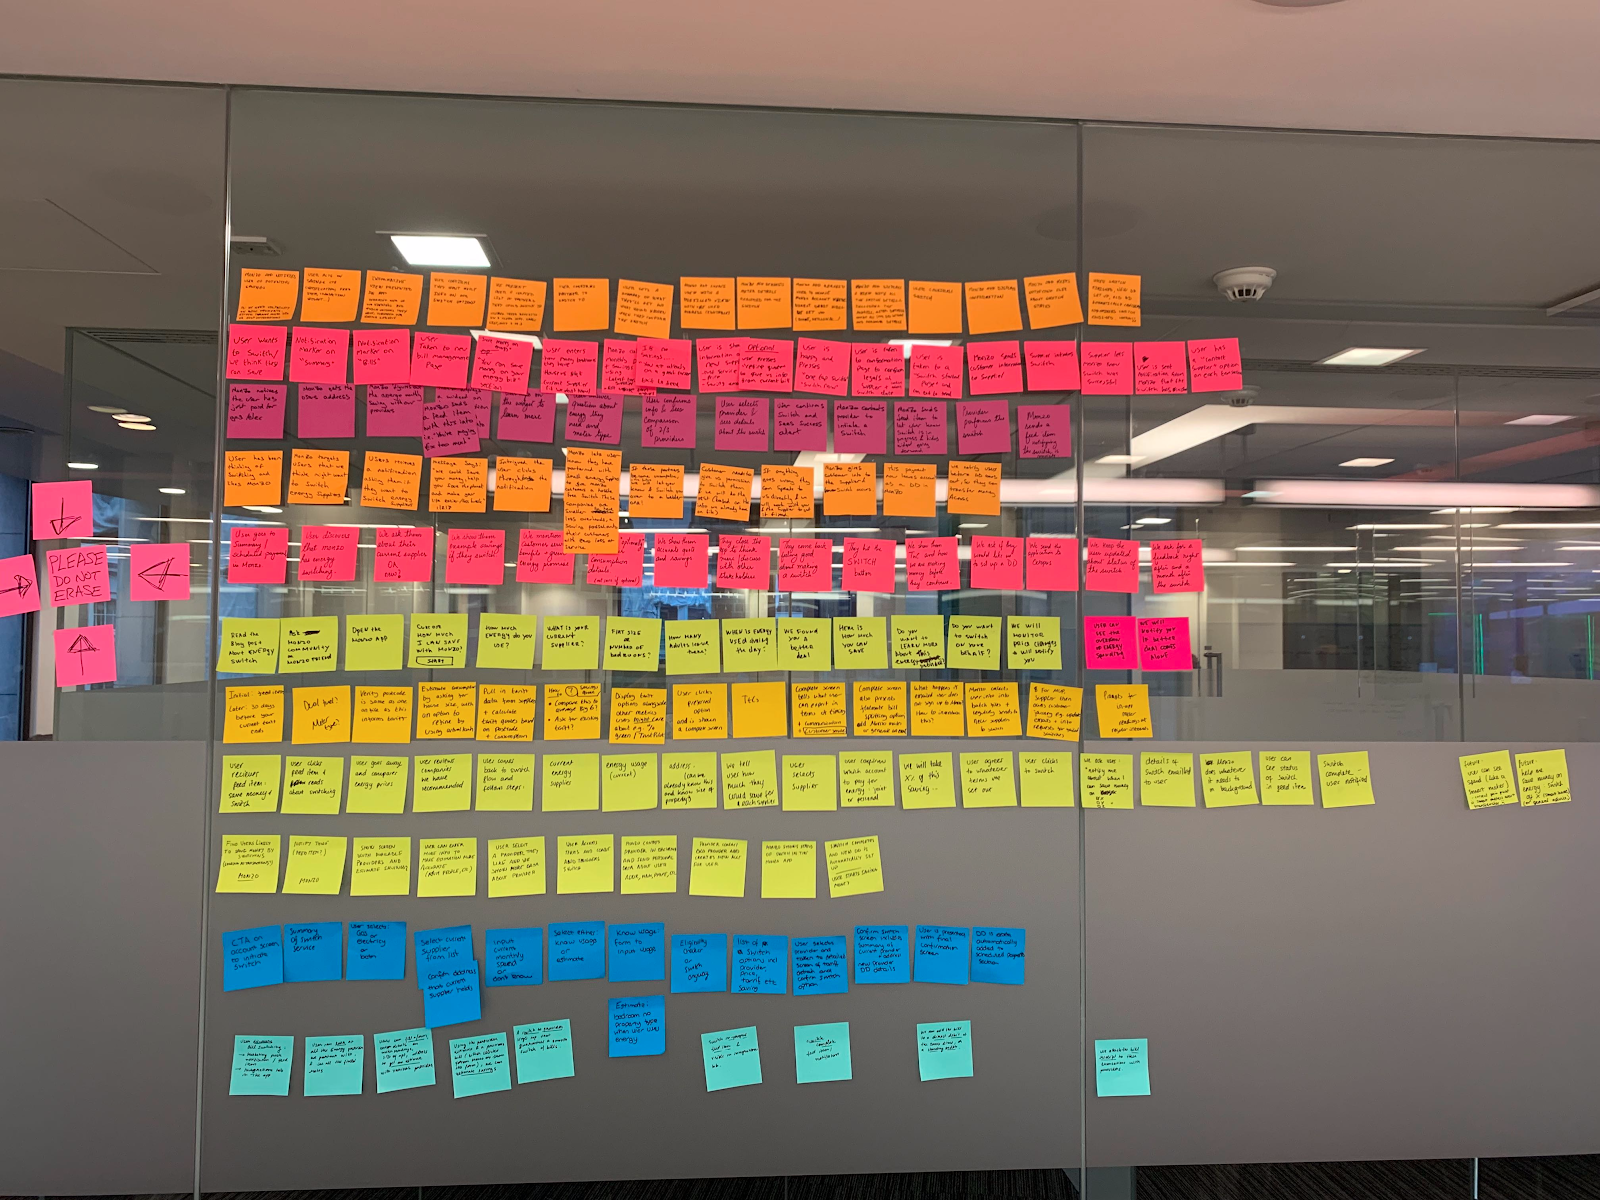 Post it notes showing user mapping